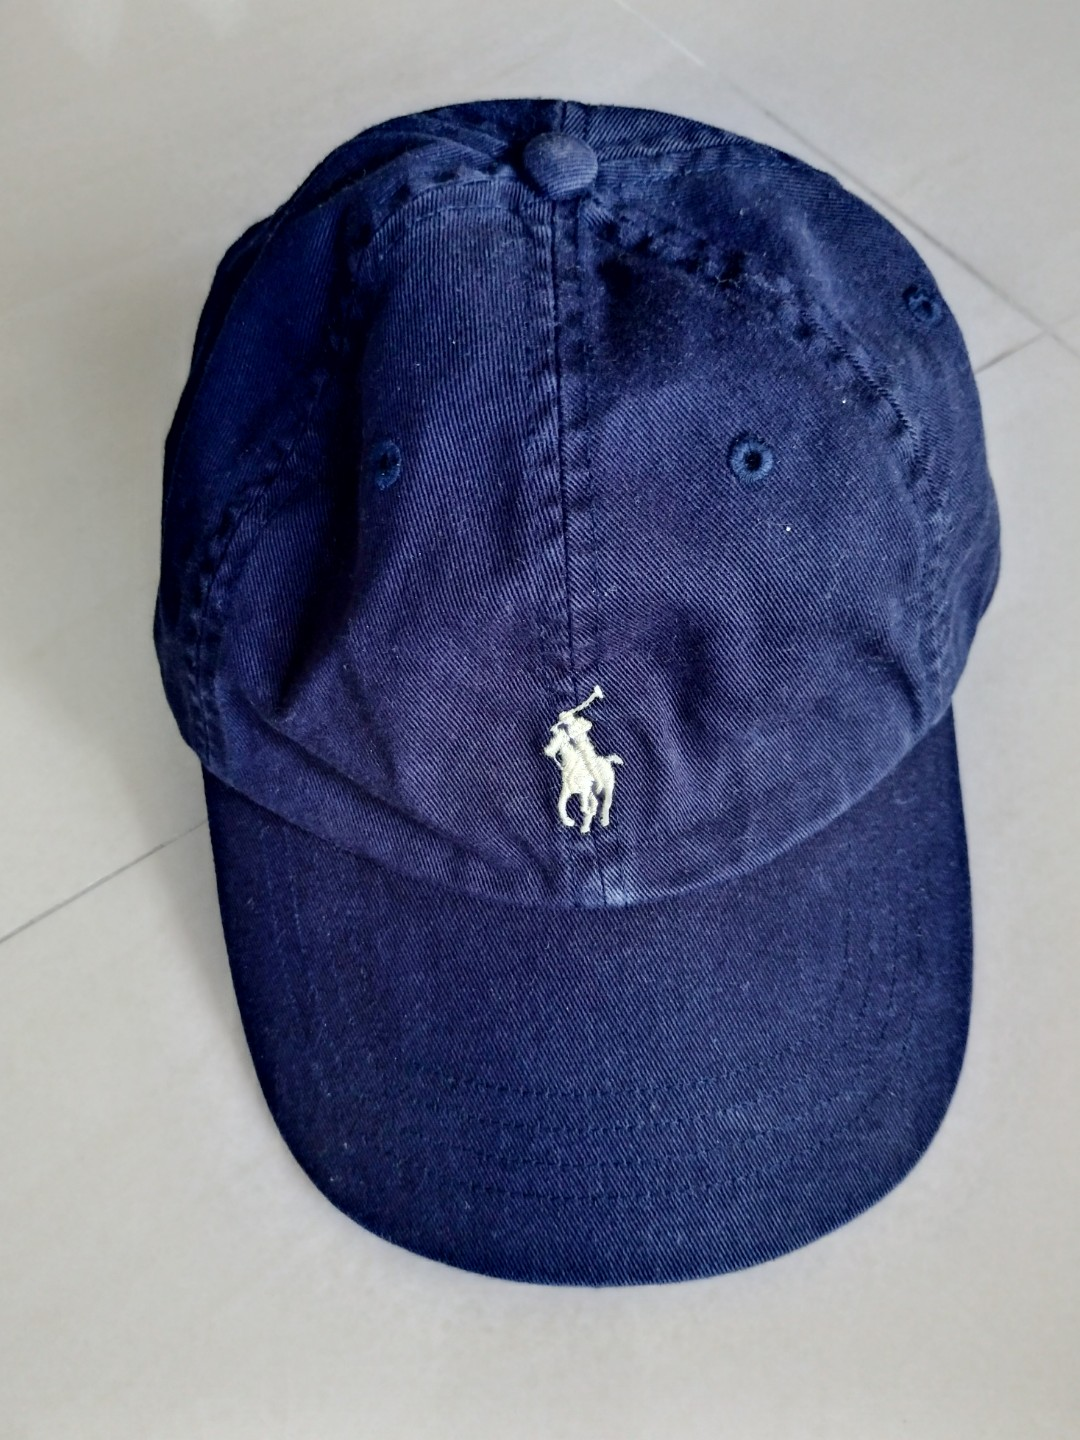 BNWT Authentic Polo Ralph Lauren Cap 07806b751372